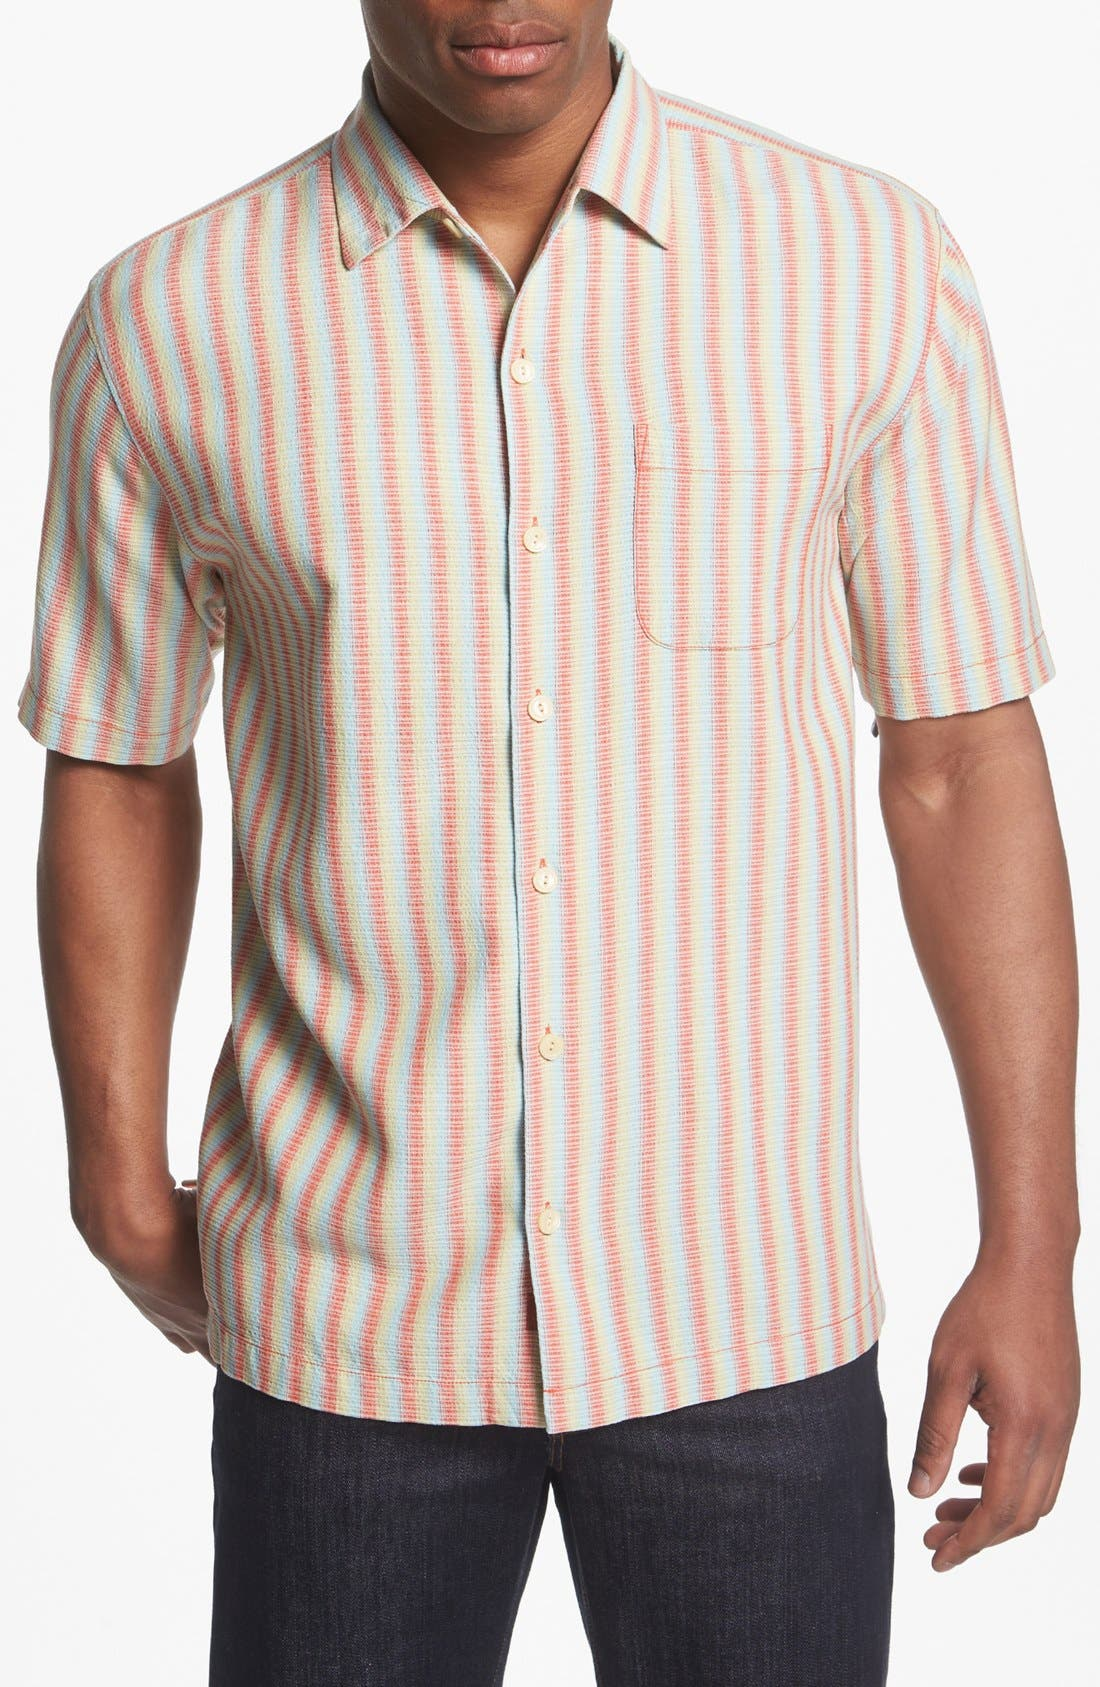 Alternate Image 1 Selected - Tommy Bahama 'Dancing with the Stripes' Silk Campshirt